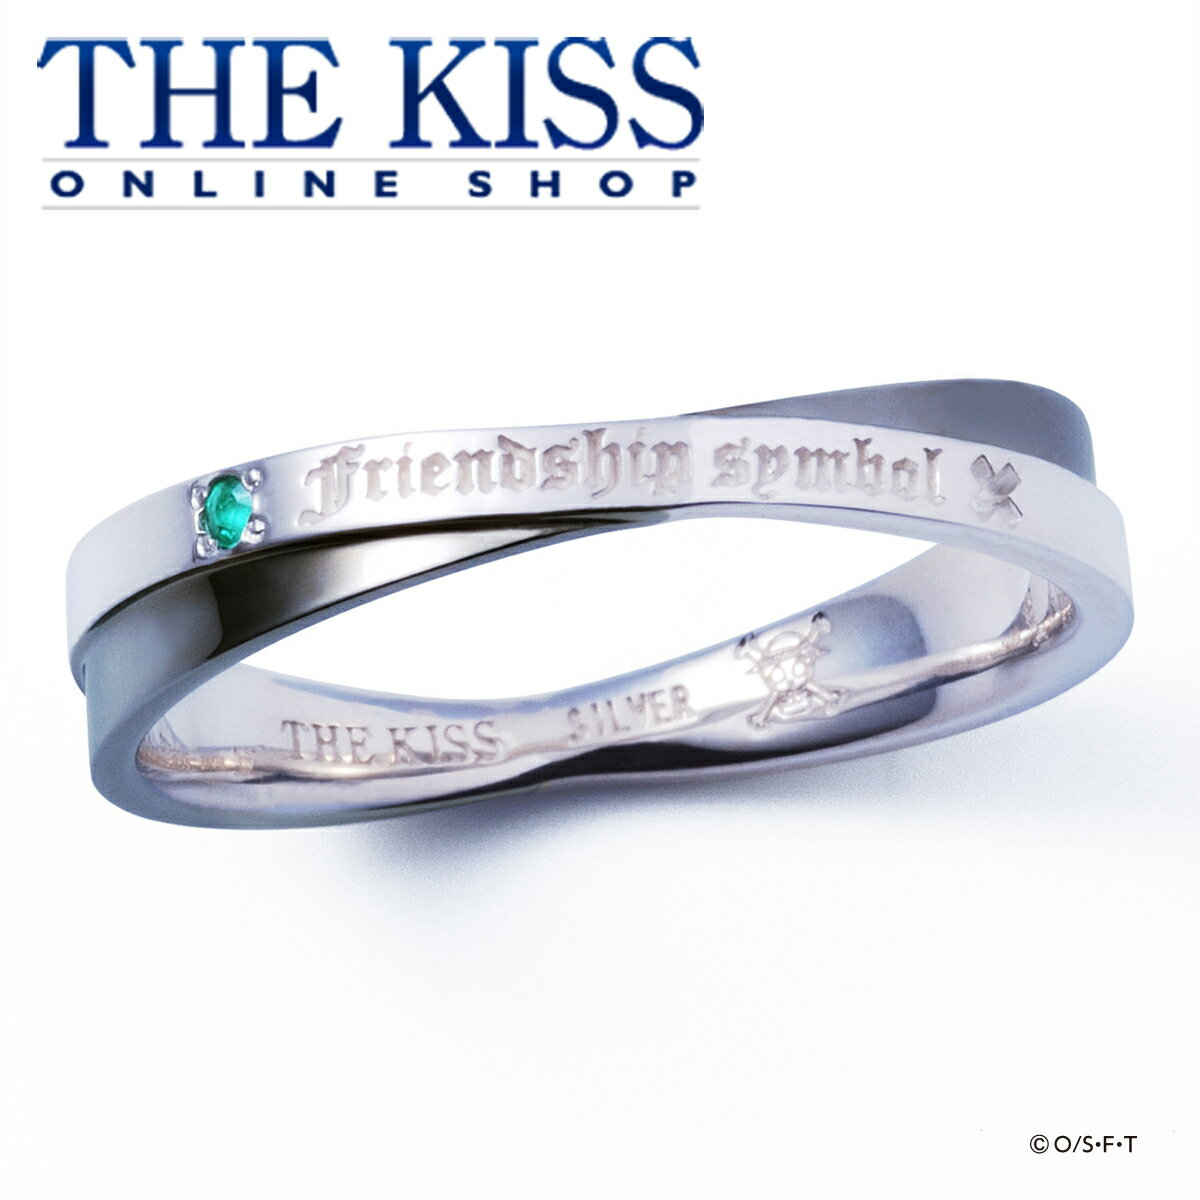 ペアアクセサリー, ペアリング ONE PIECE Ver. THE KISS - SILVER Pair Ring couple